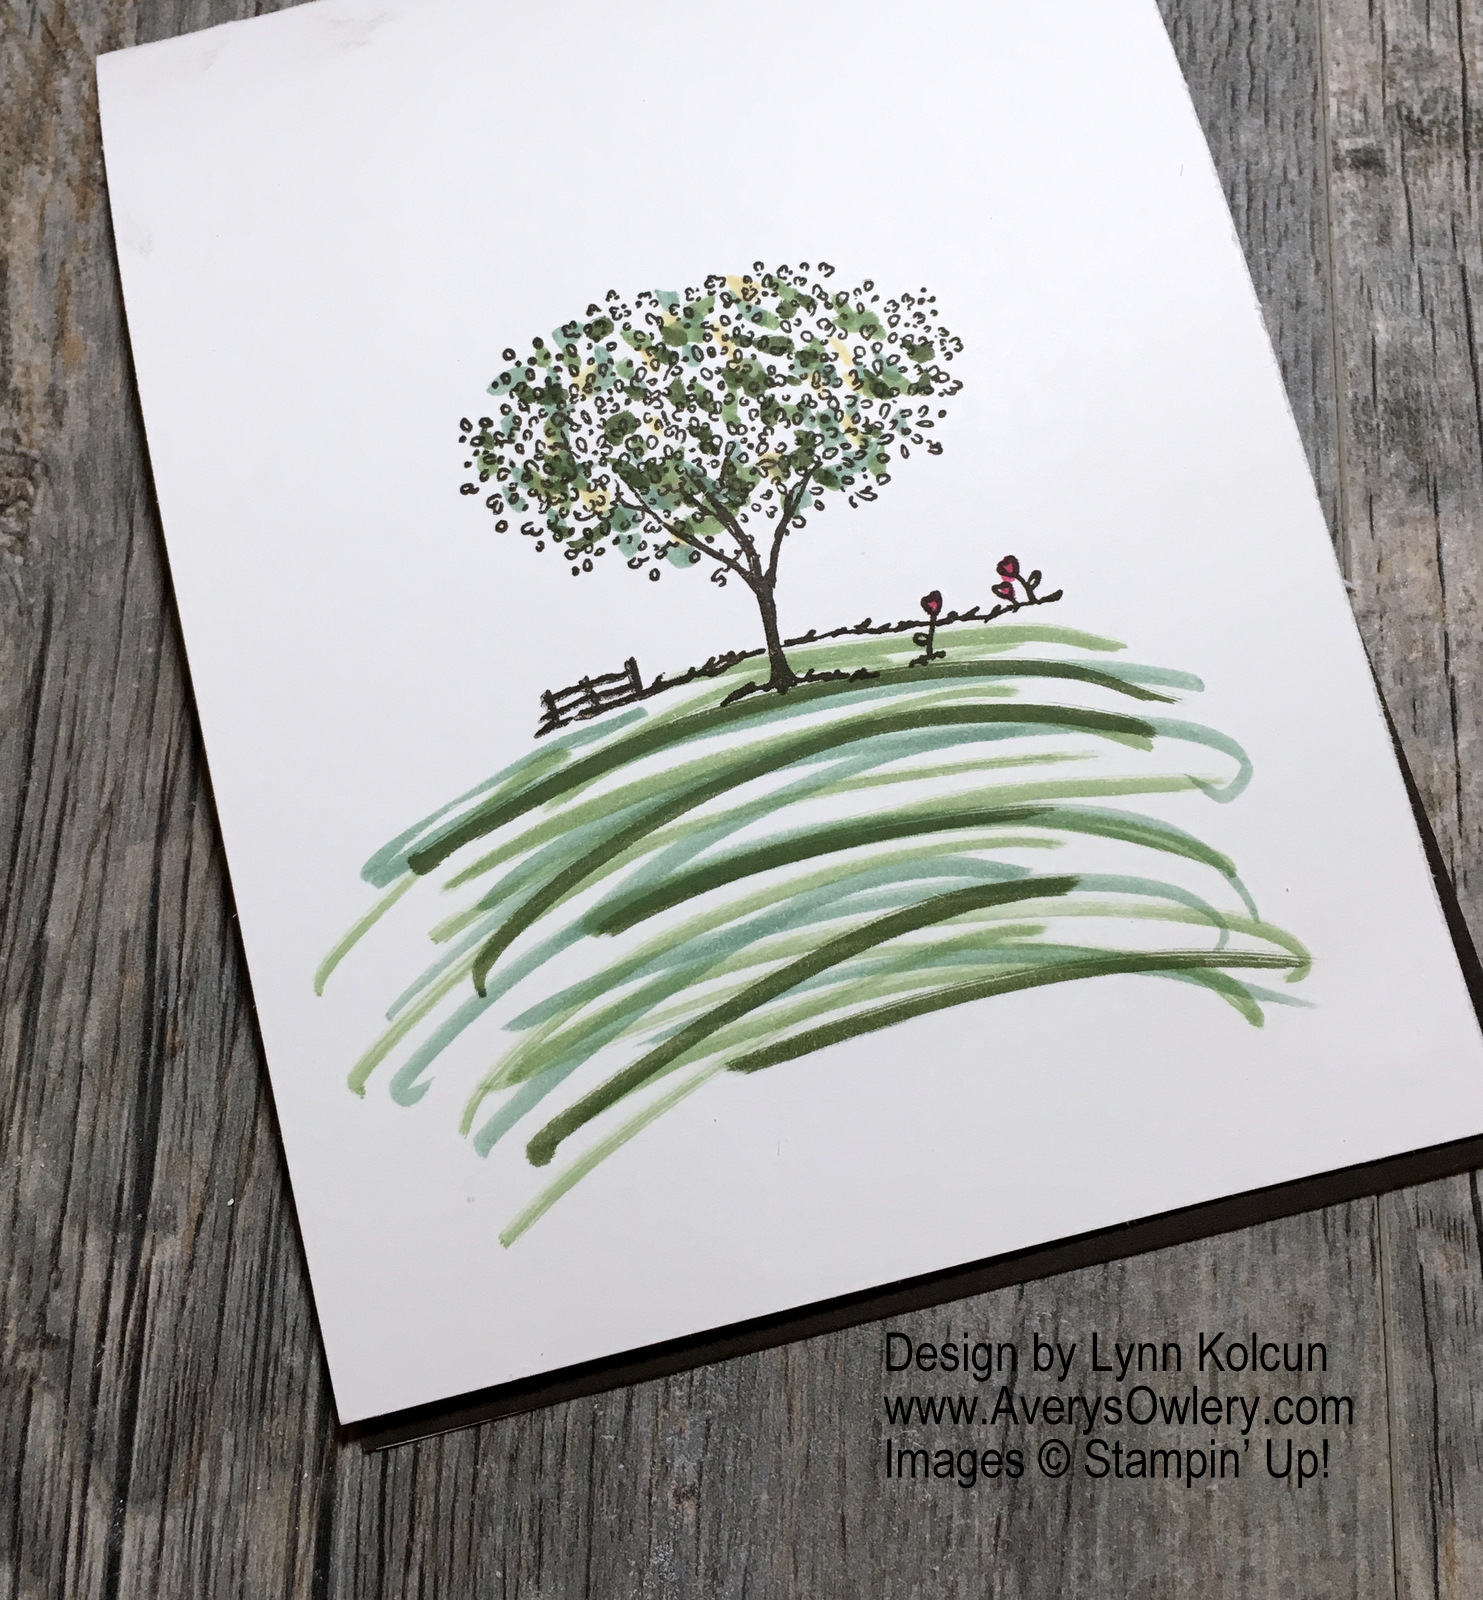 Stampin Up Happy Home AverysOwlery.com